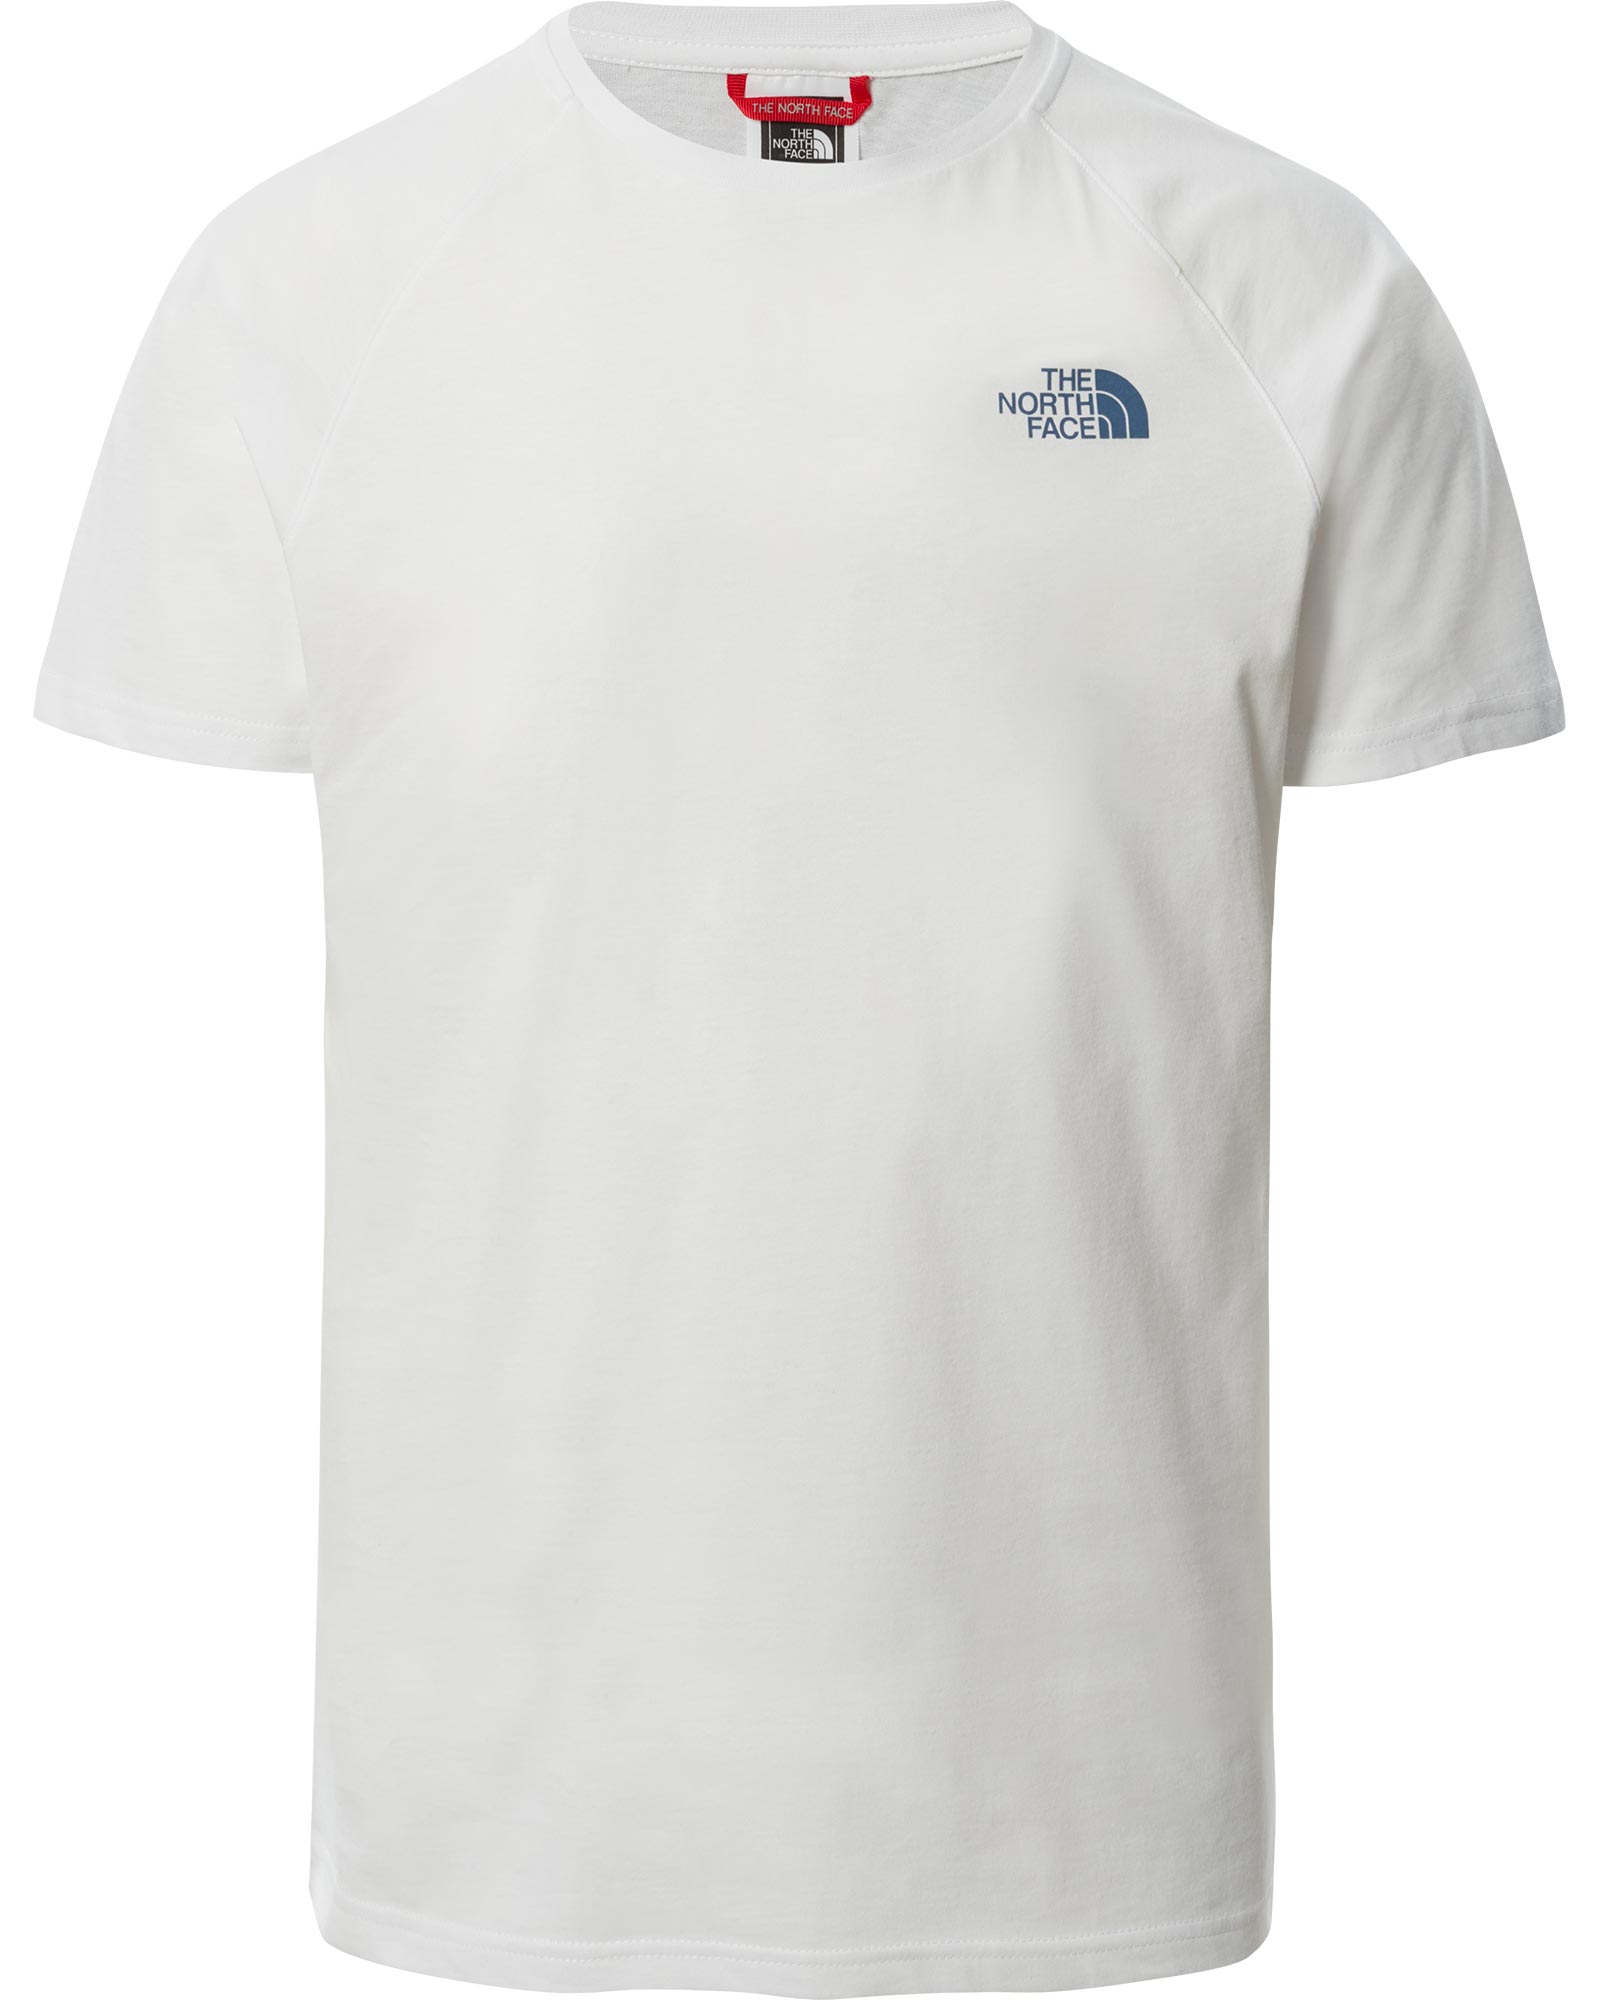 The North Face North Faces Men's T-Shirt